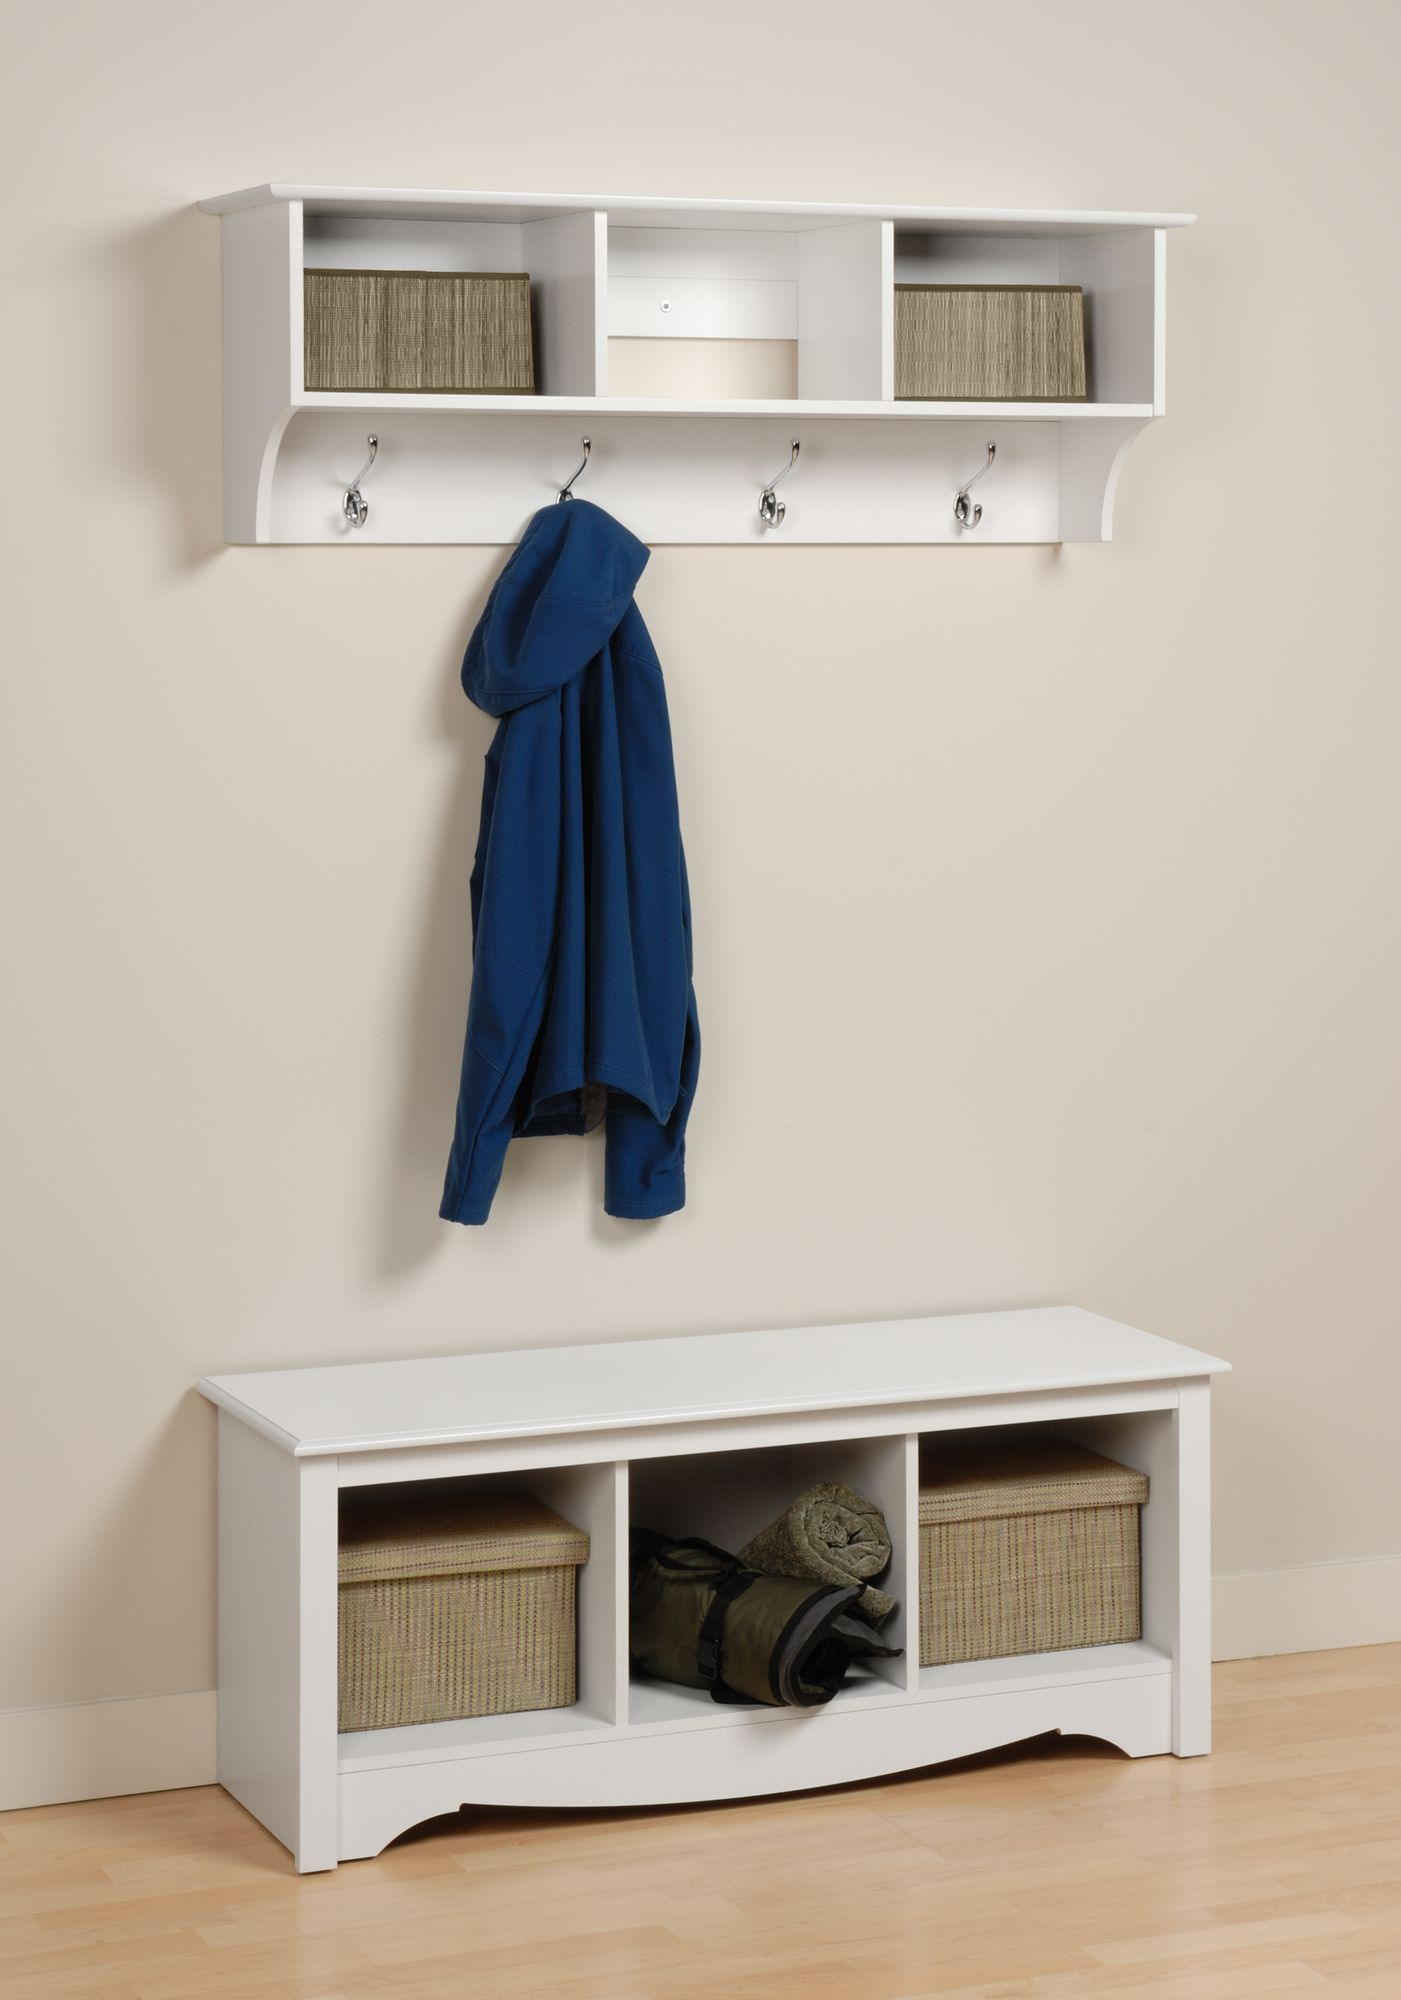 Shelves White Walls And Entry Ways: Entryway Cubby Shelf, Diy Coat Rack, Entryway Wall Shelf